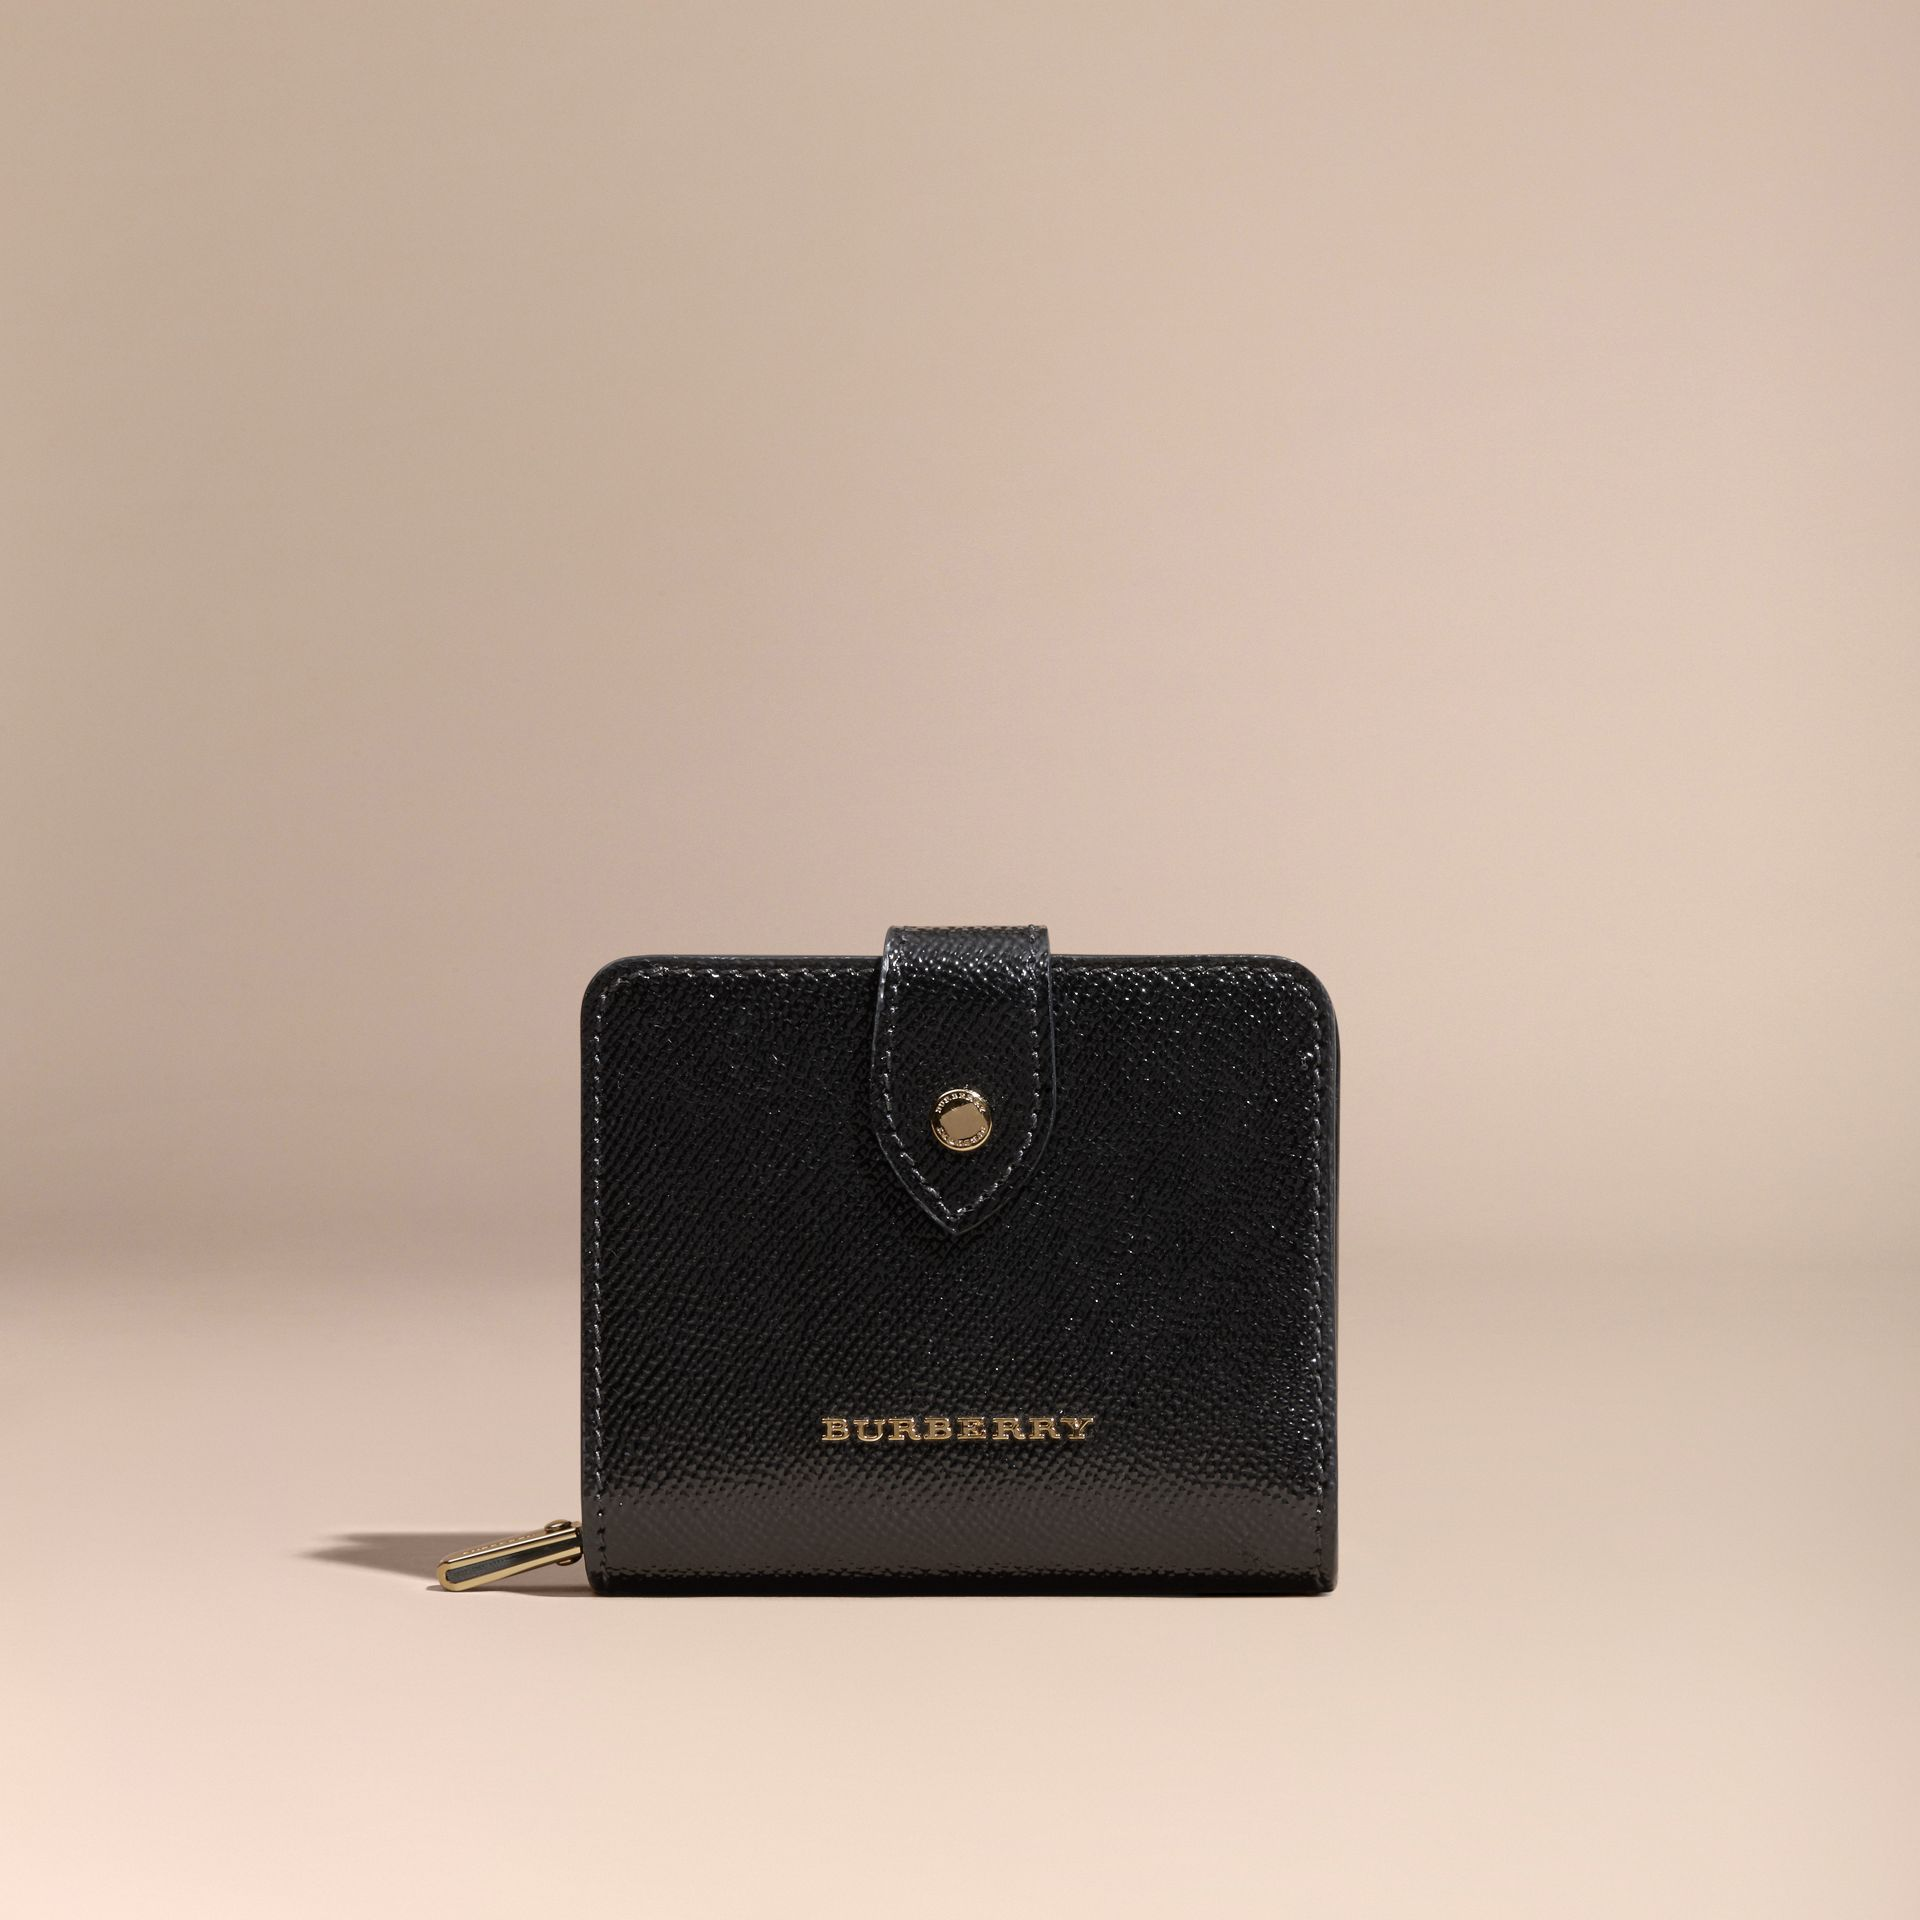 Black Patent London Leather Wallet Black - gallery image 6